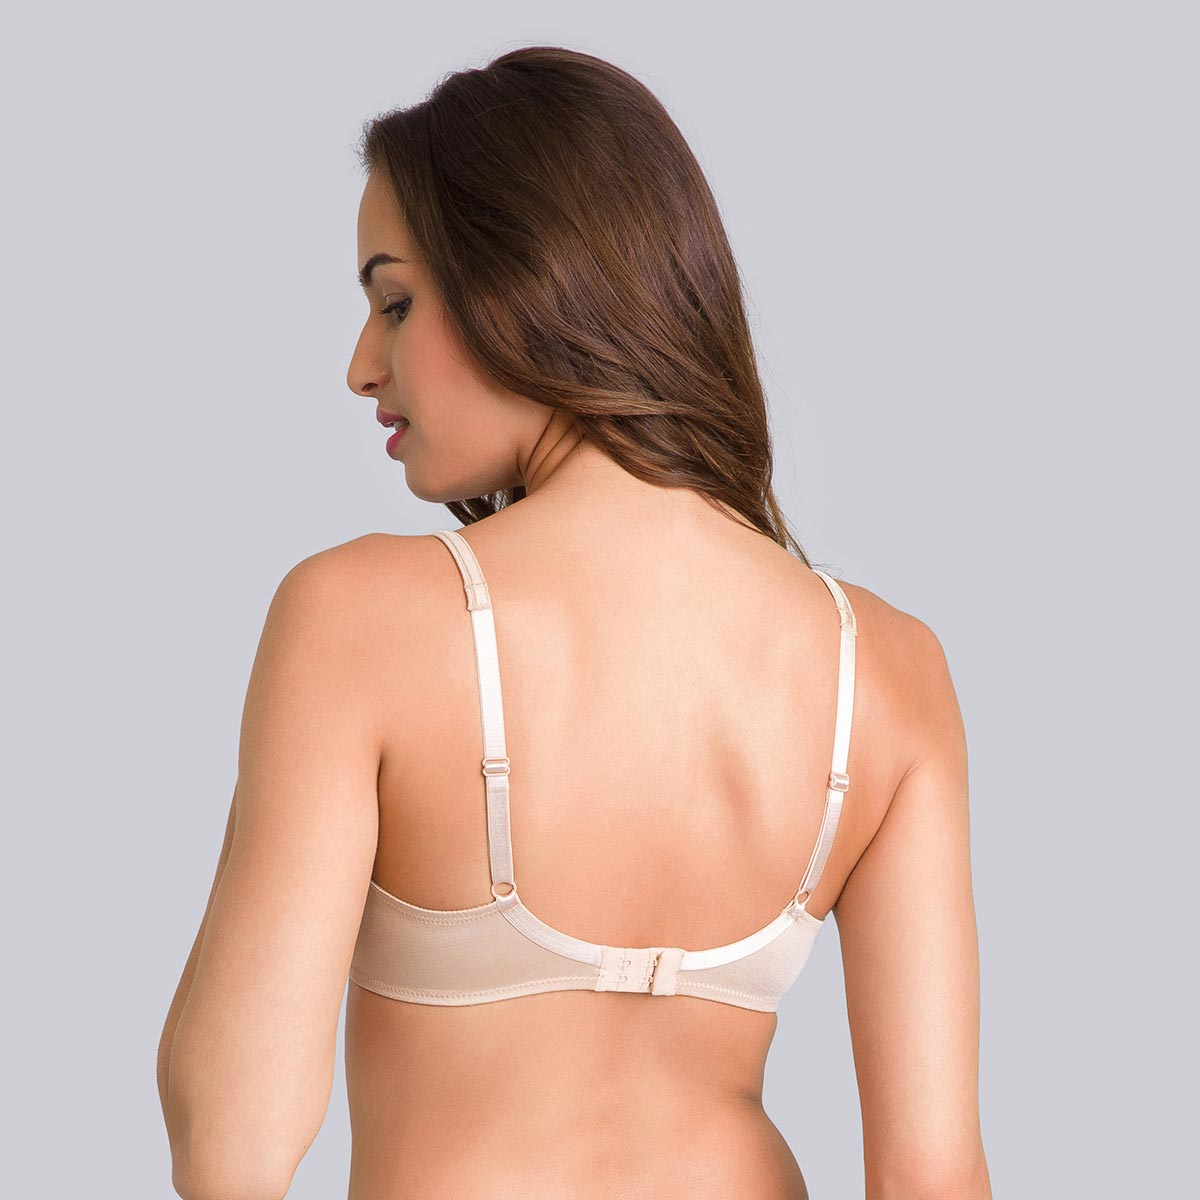 Full Cup Underwired Bra in Beige - Satiny Micro-Support-PLAYTEX